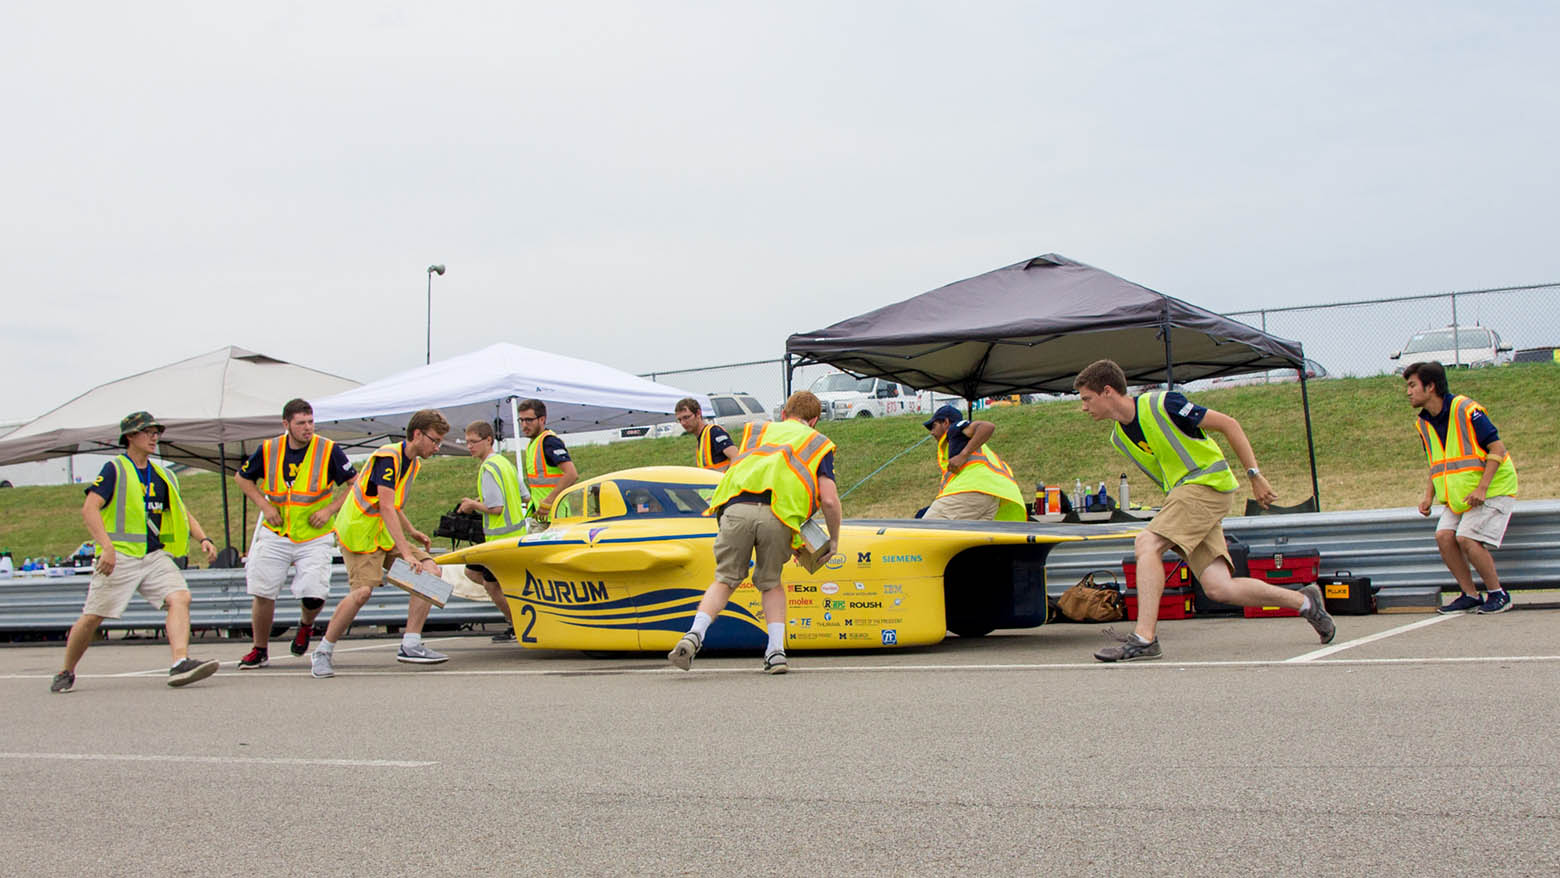 Members of the Michigan Solar Car team race to surround their car, Aurum, during a pit stop at the track.